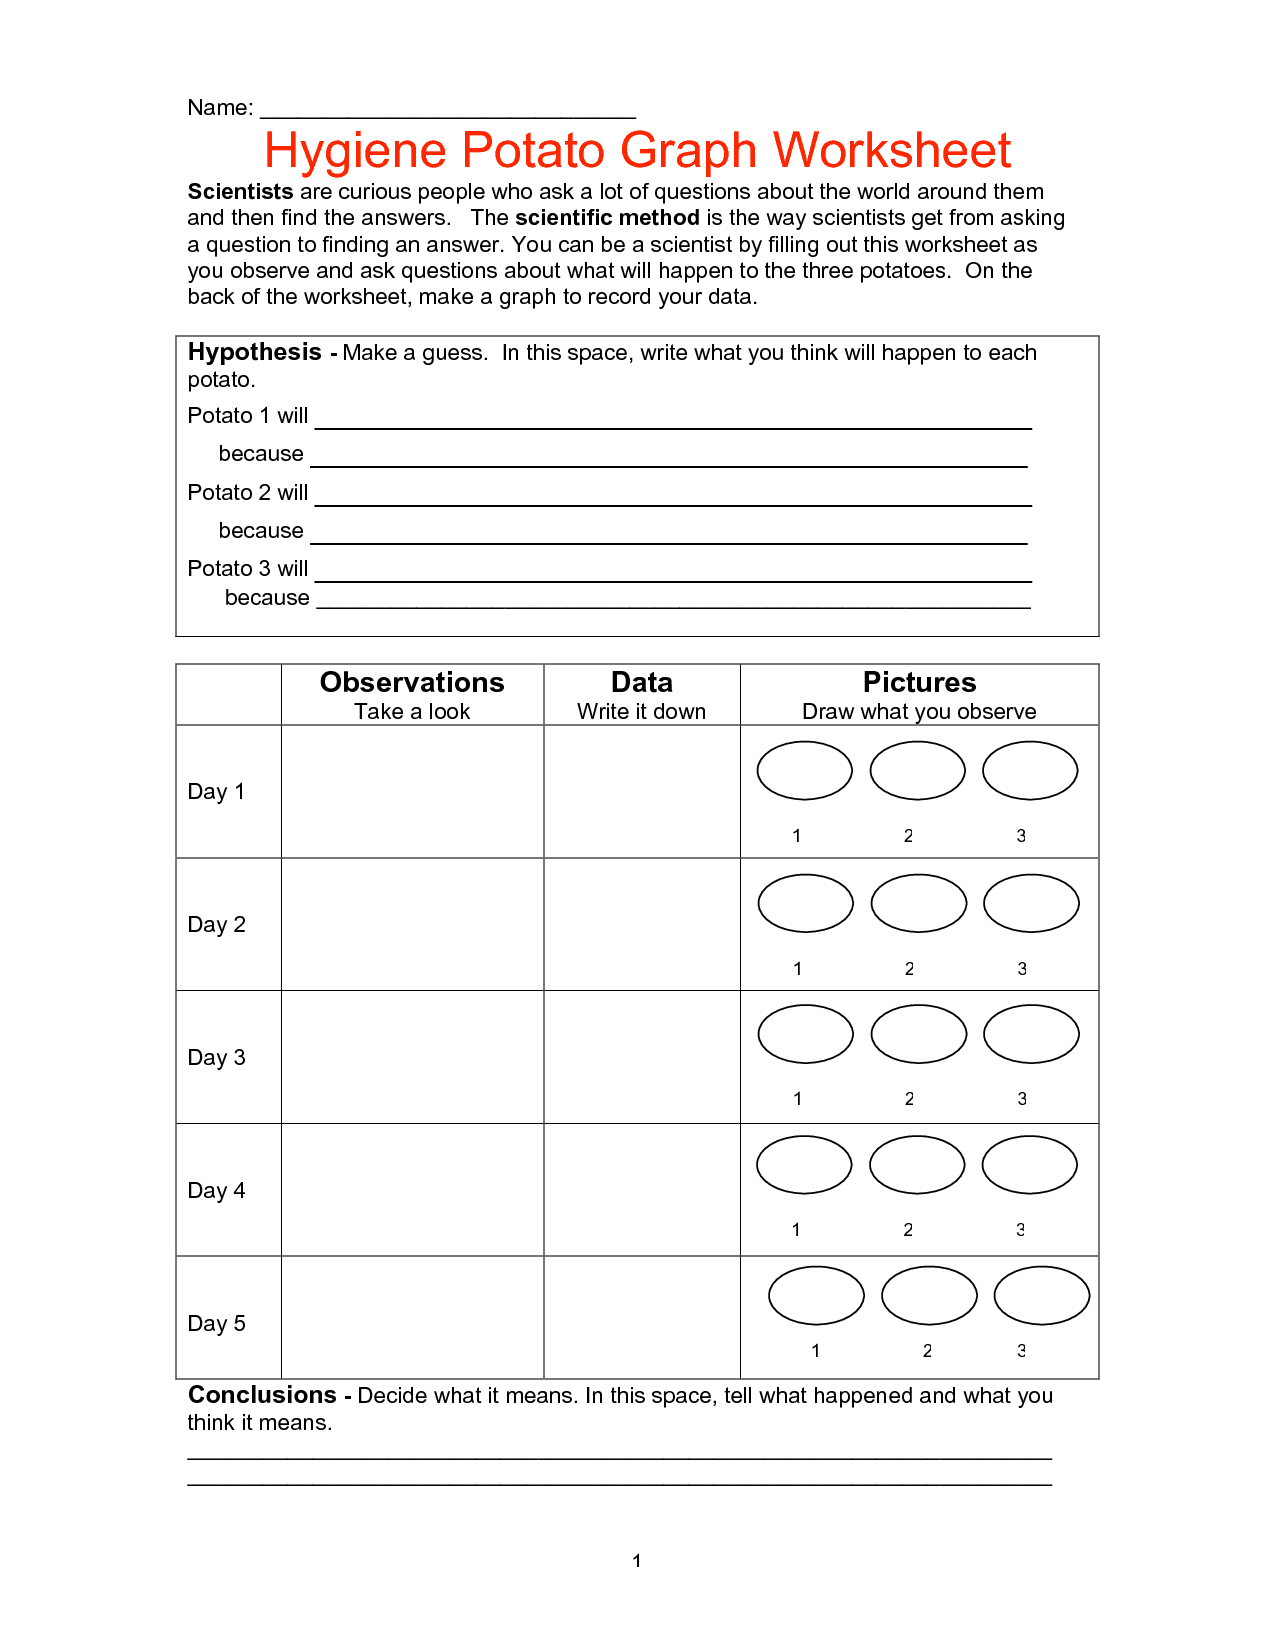 8 Best Images Of Printable Hygiene Worksheets For Adults